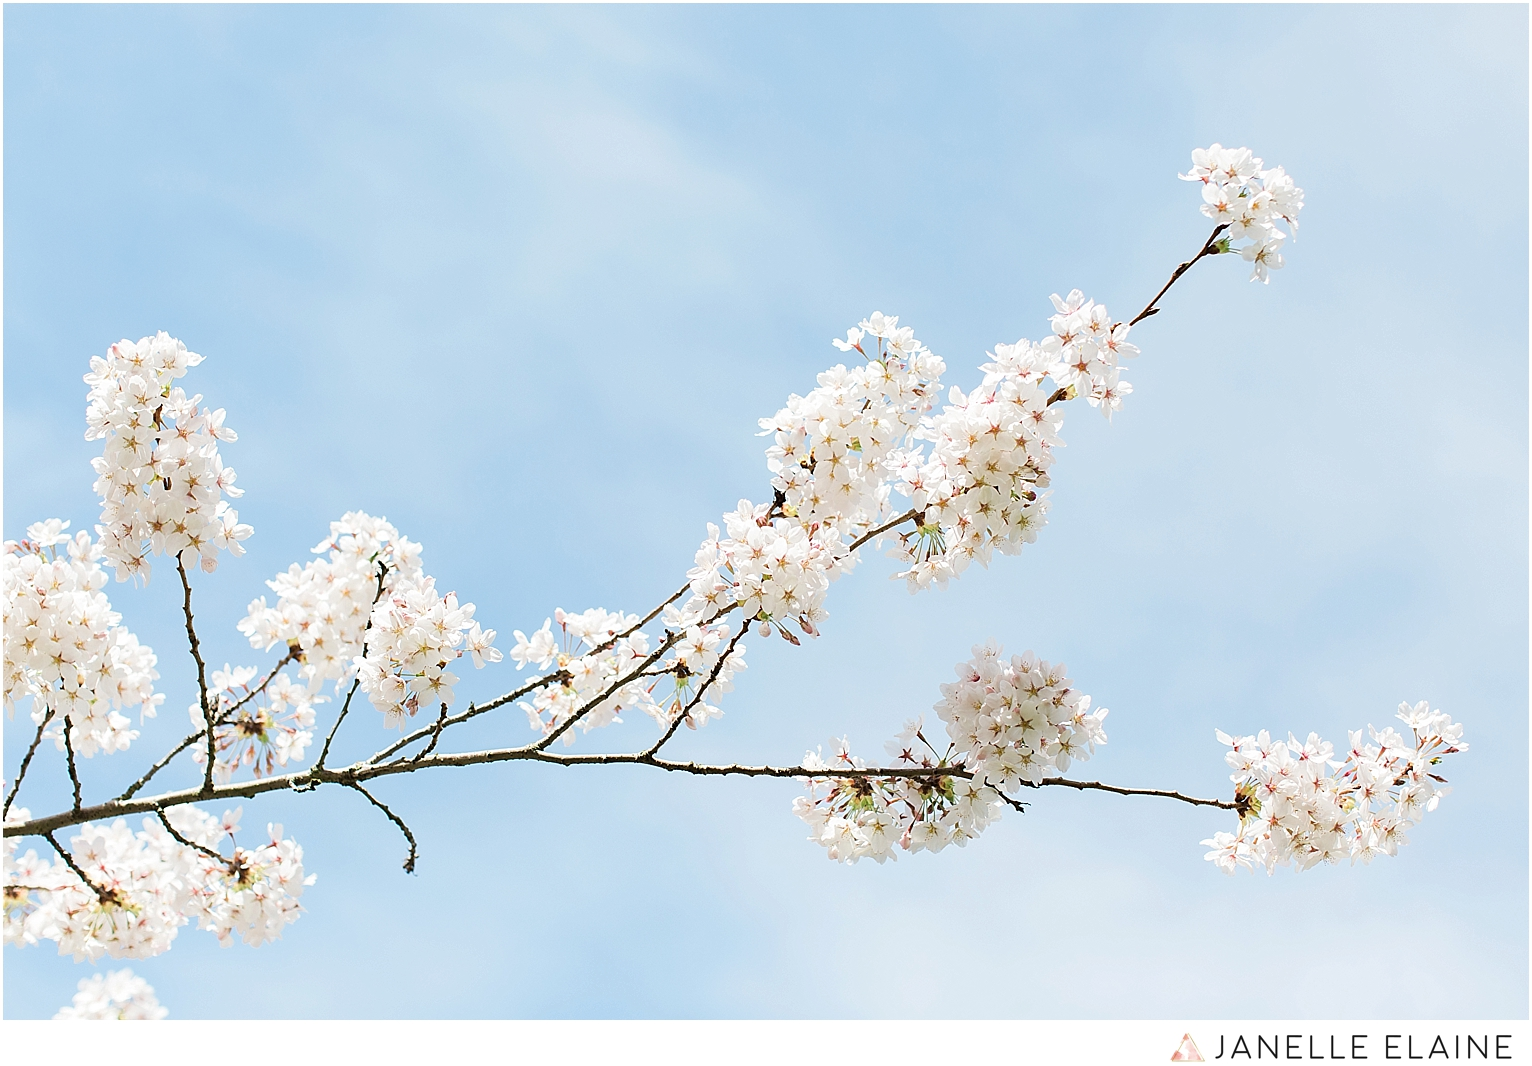 sping-blossoms-seattle photographer janelle elaine-3.jpg